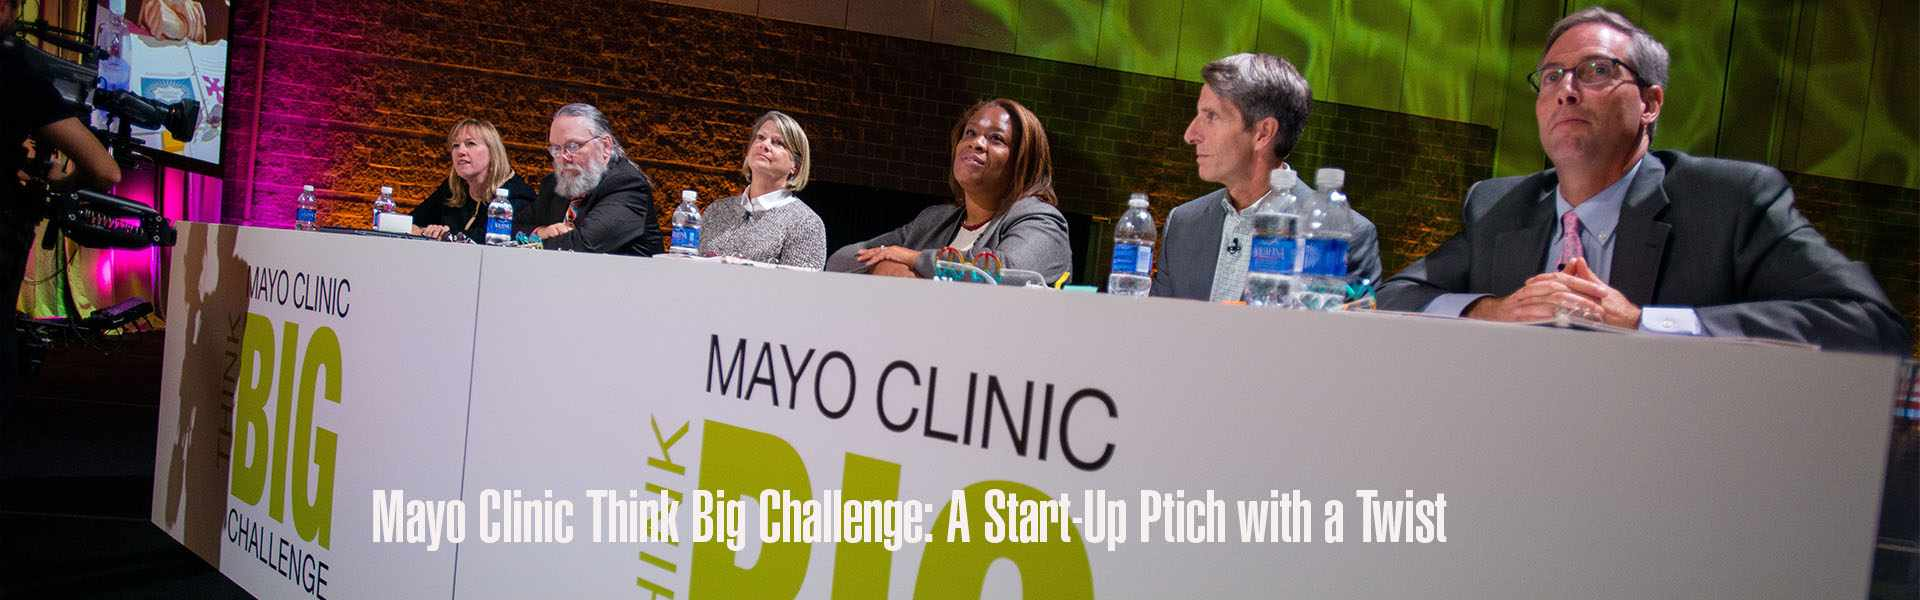 Mayo Clinic Think Big Challenge 2016